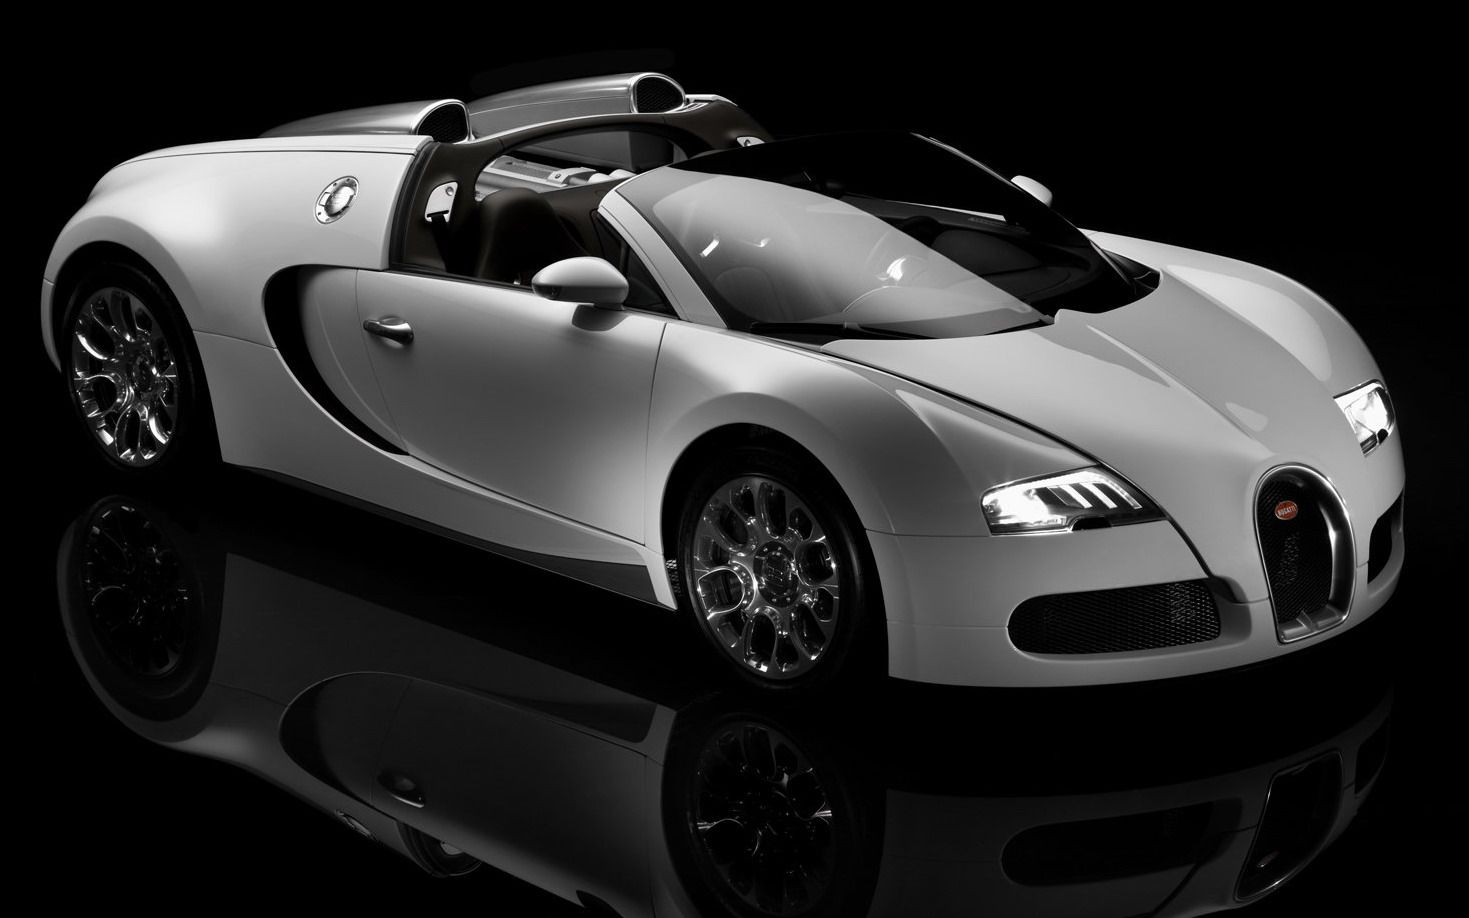 Bugatti Veyron Super Sport Car Not Quite My Style At All But It